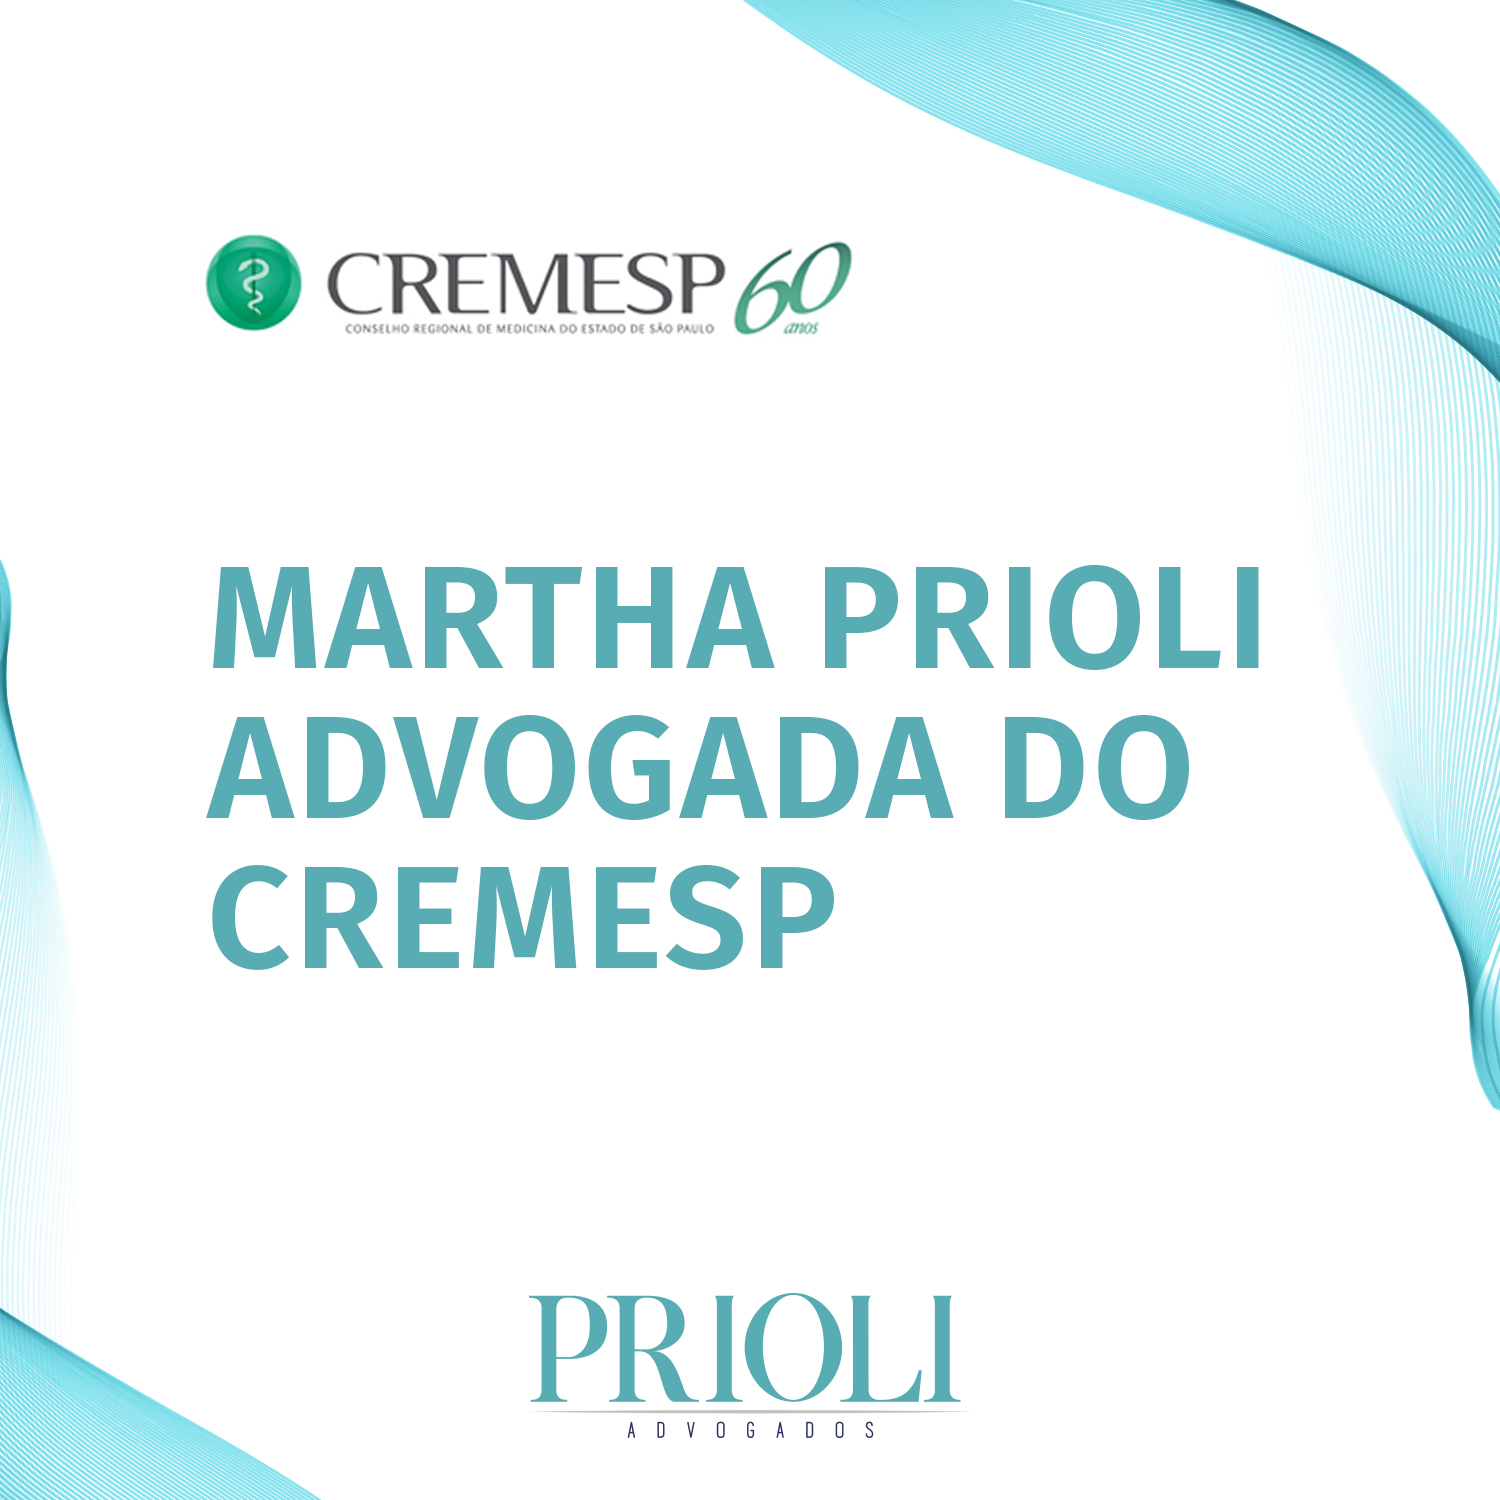 MARTHA PRIOLI ADVOGADA DATIVA DO CREMESP